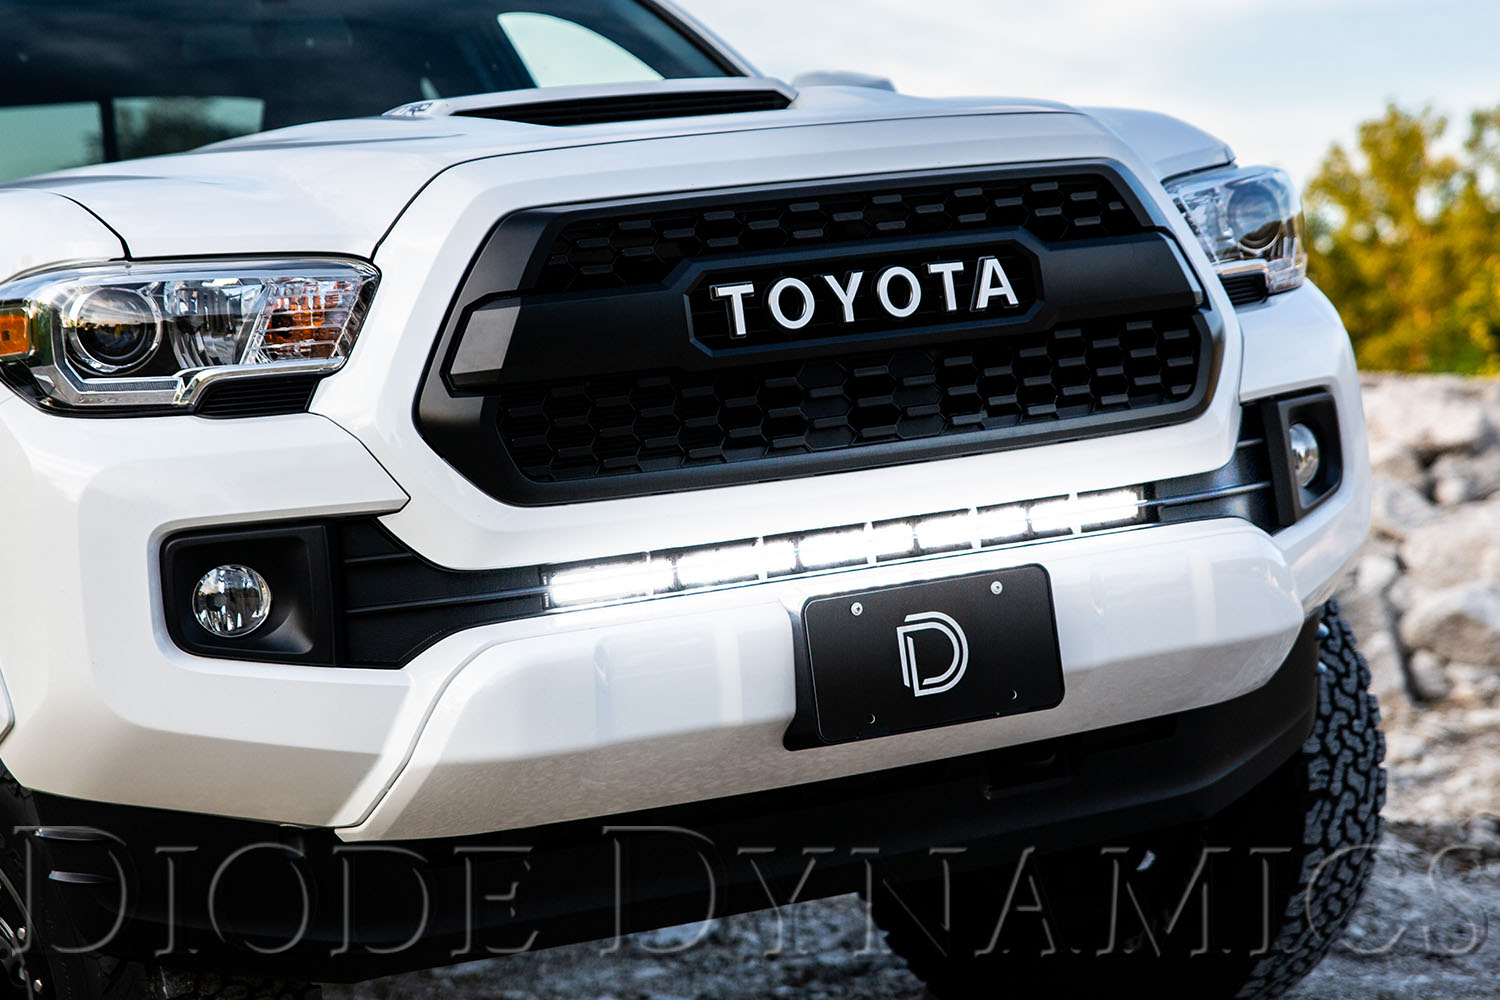 Toyota Tacoma Stealth Light Bar Kit 2016-2019